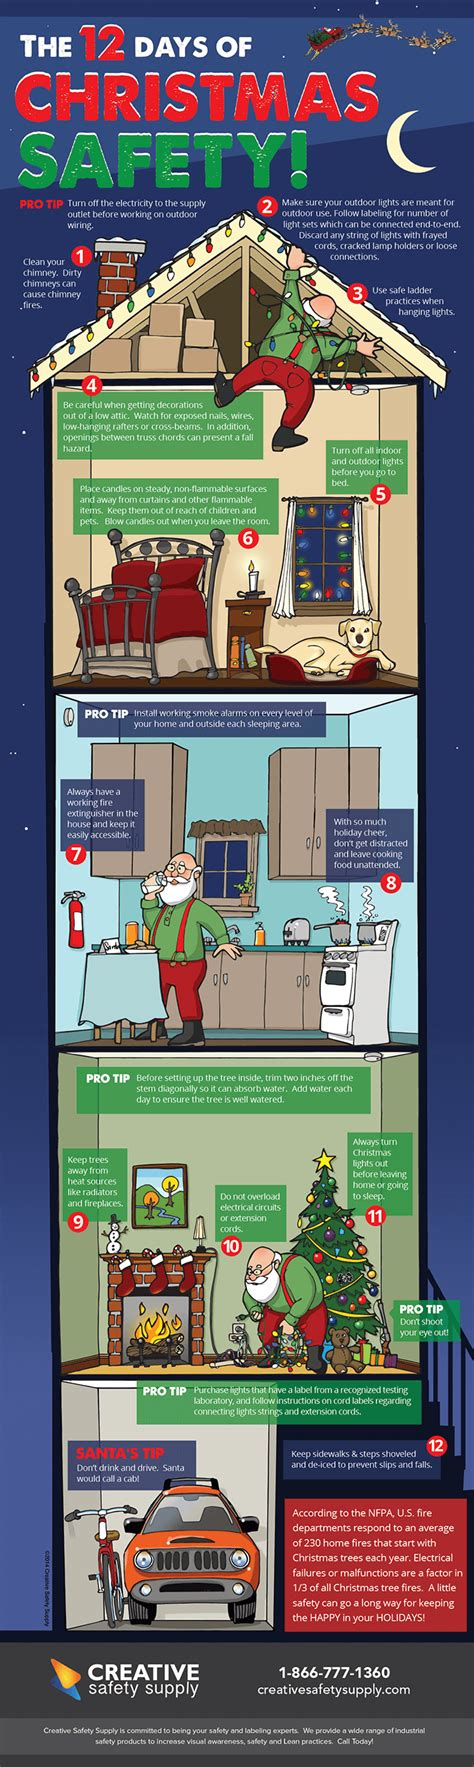 free christmas tree safety tips the 12 days of safety infographic ehs safety news america